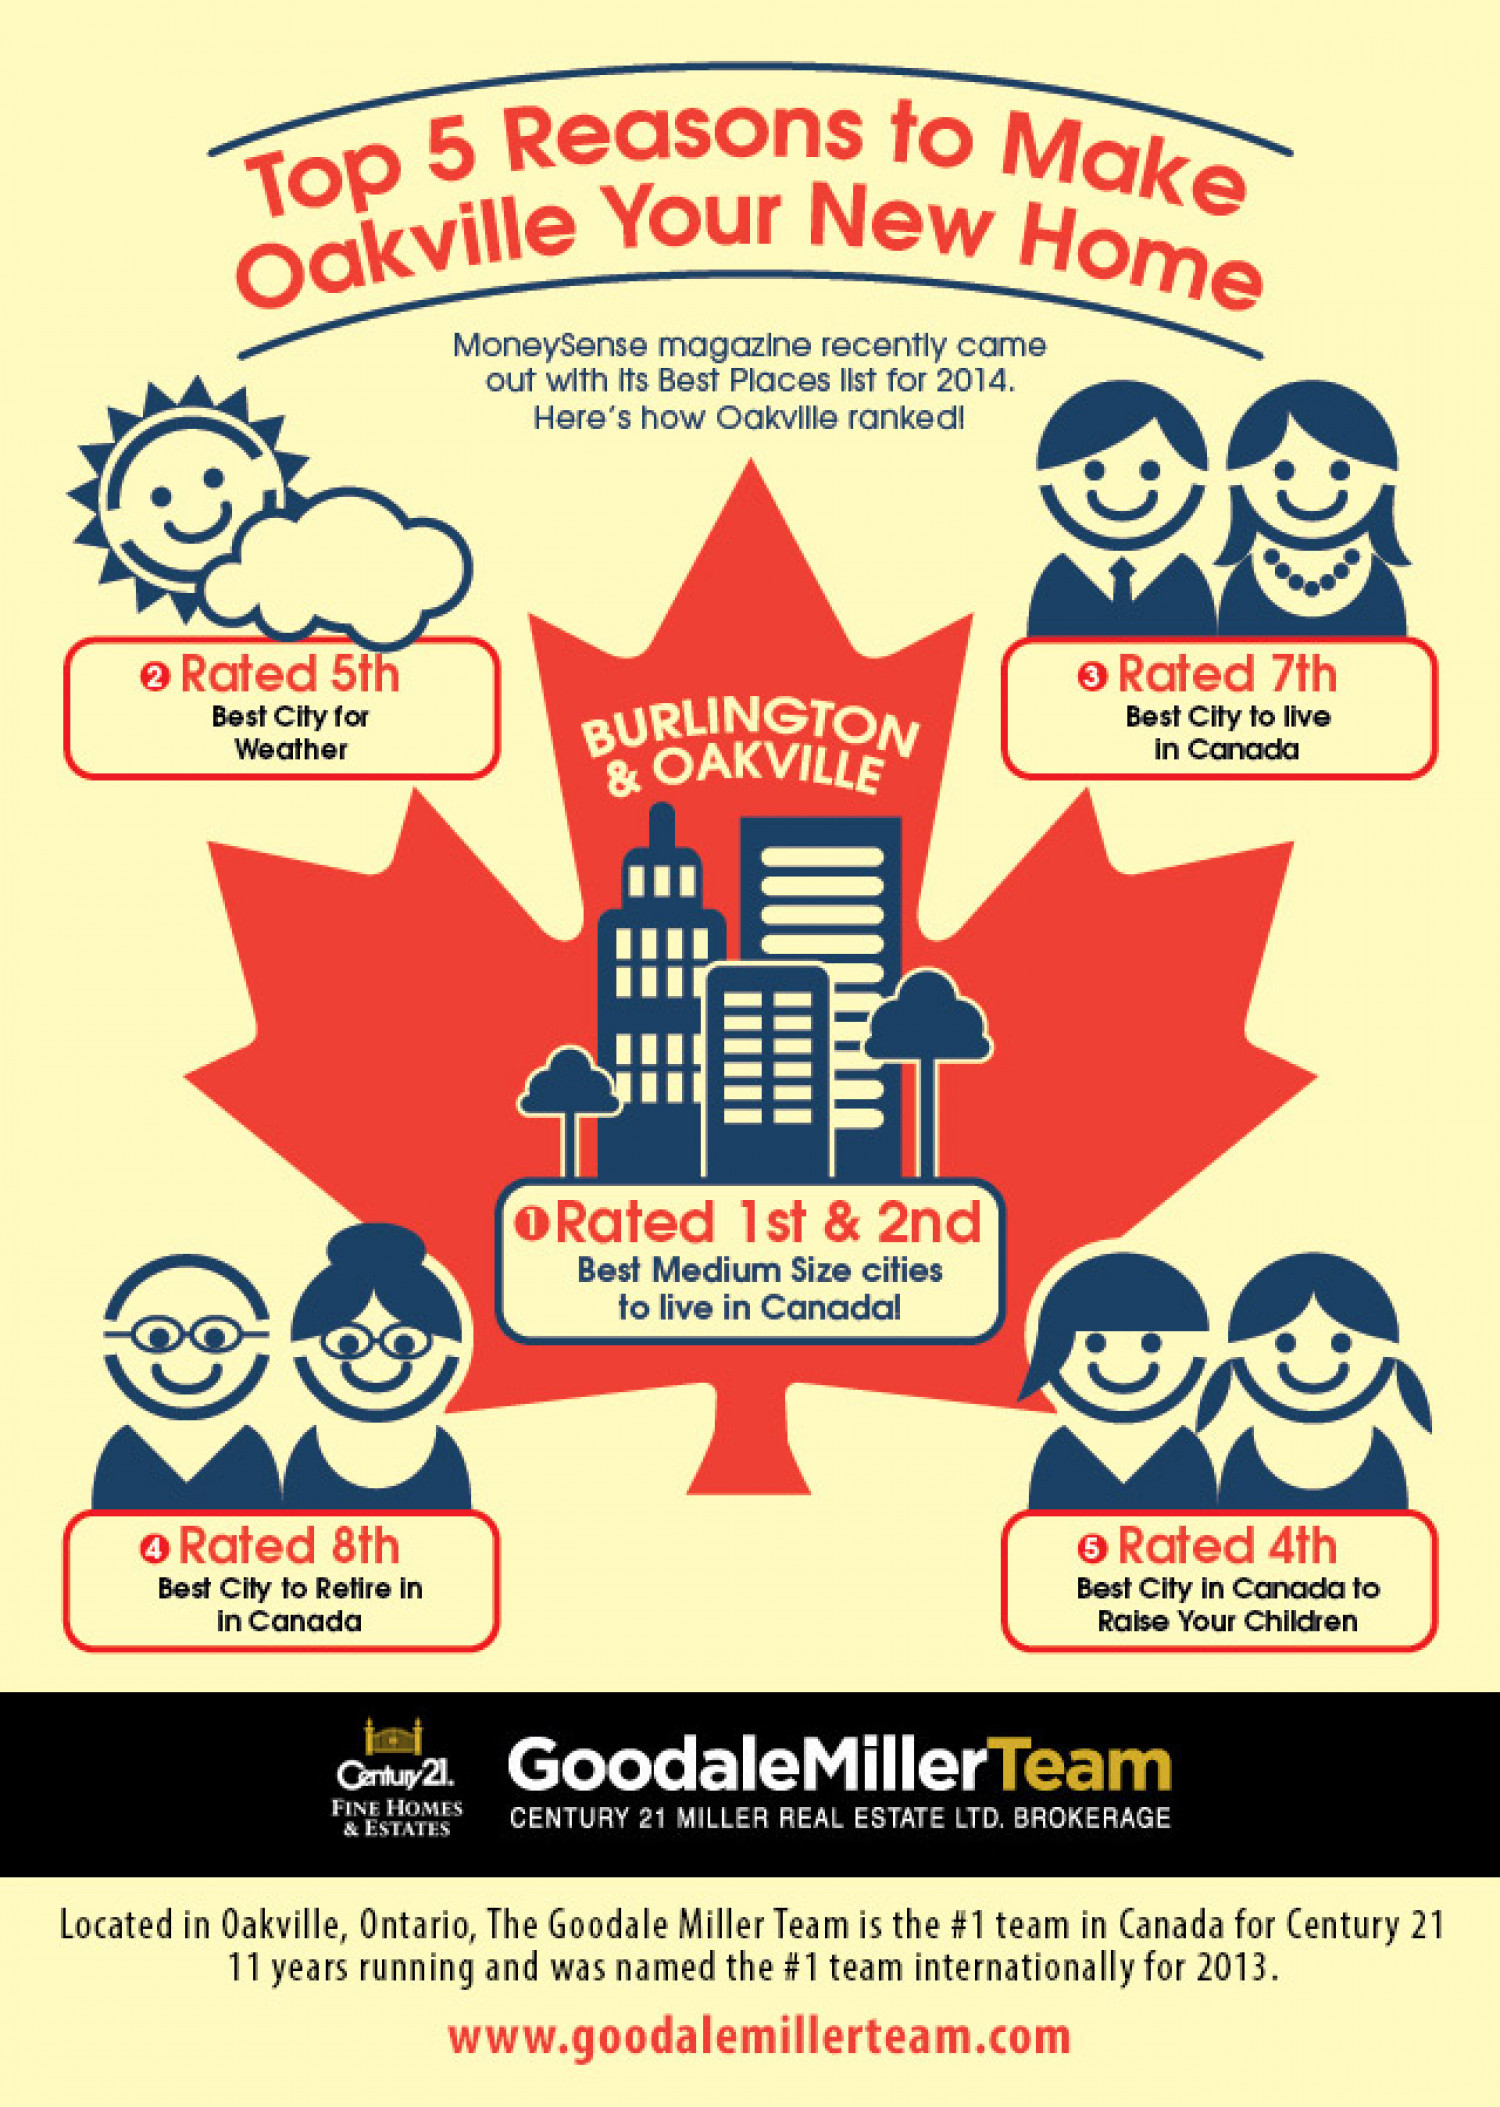 Top 5 Reasons to Make Oakville Your New Home! Infographic